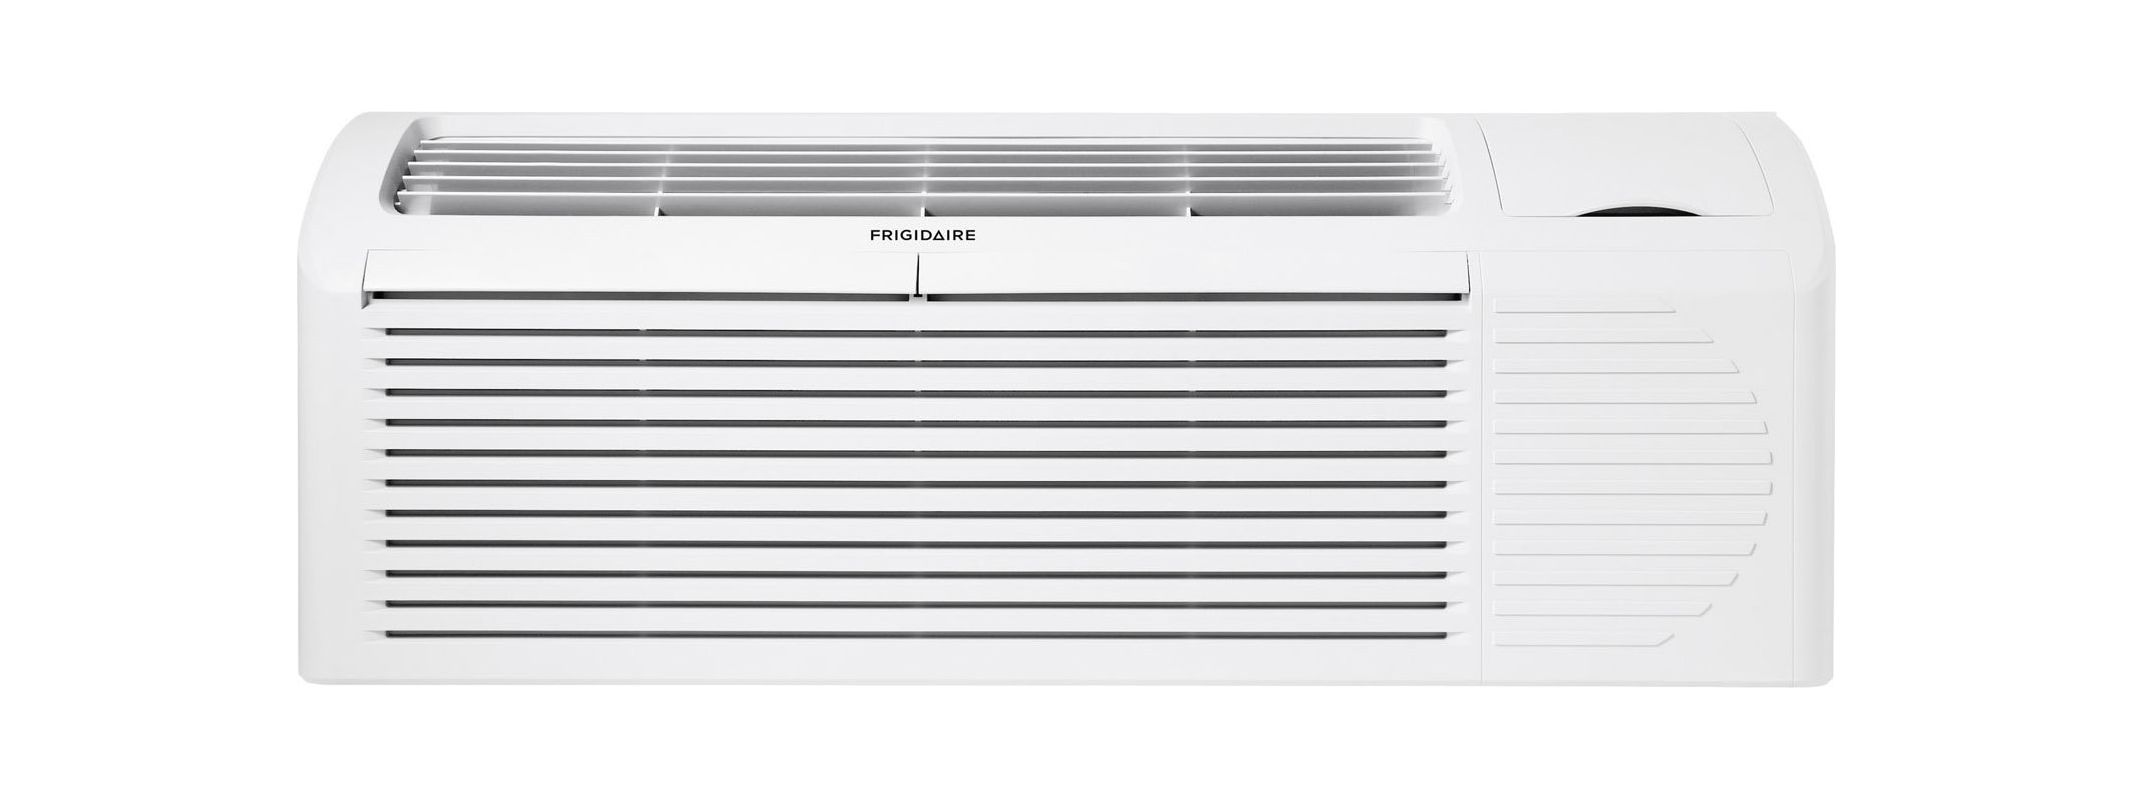 Frigidaire FRP90ETT2R 9,000 BTU 208/230 Volt Packaged Terminal Air Conditioner ( photo